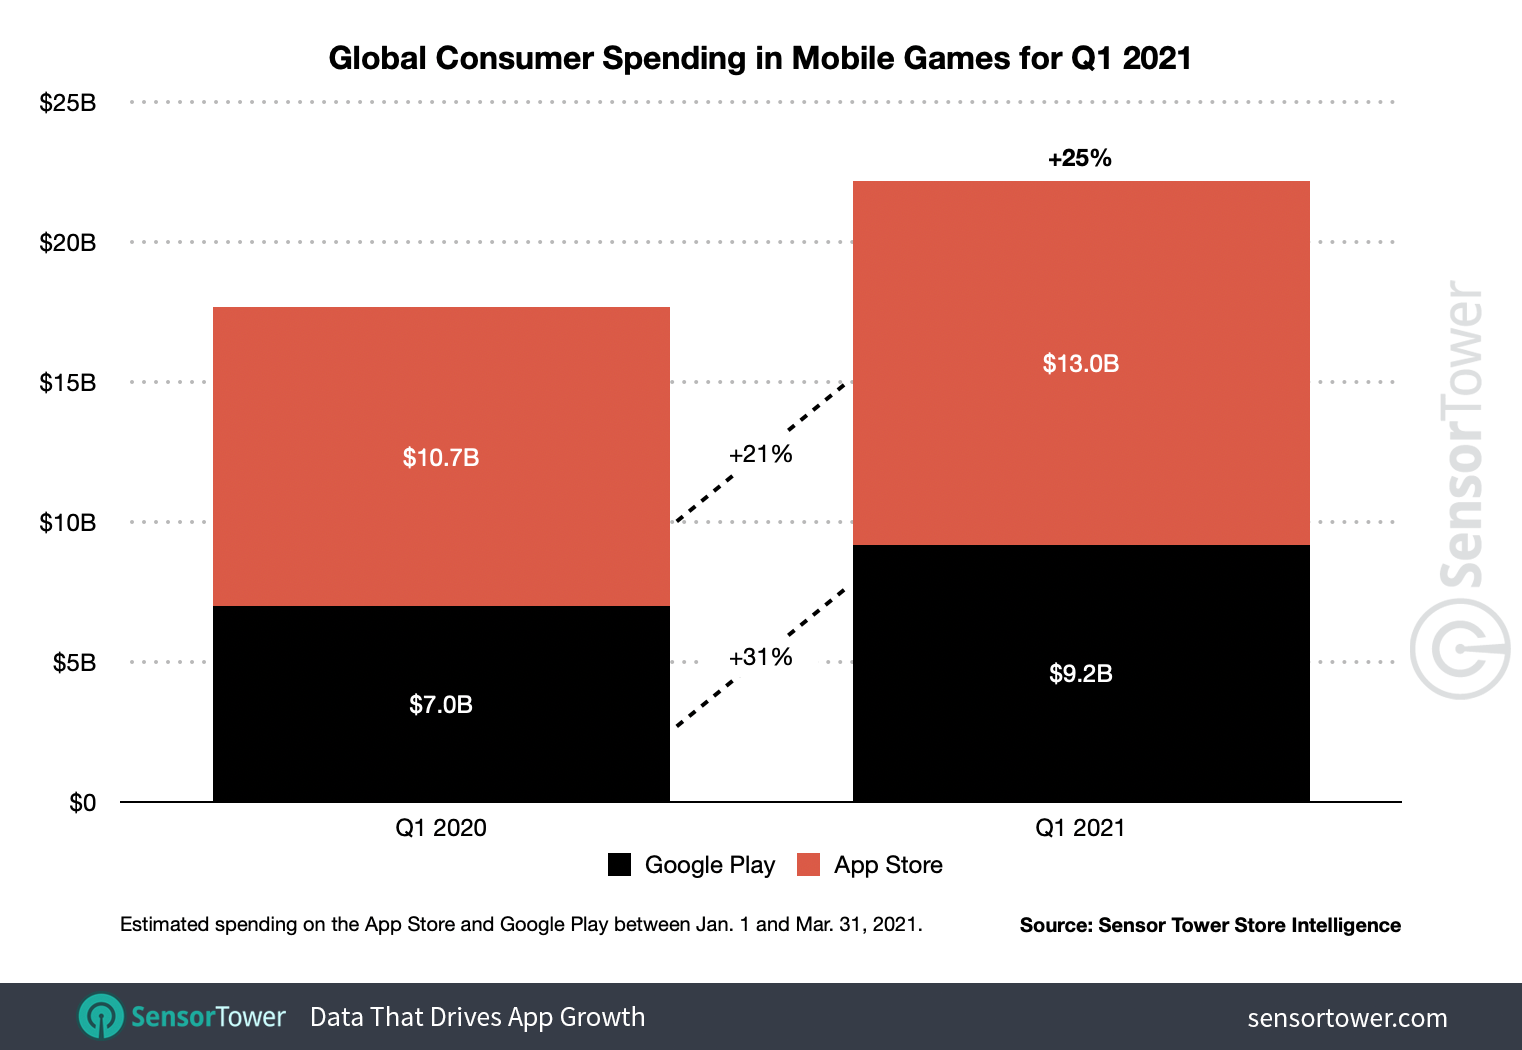 Global consumer spending on mobile games rose 25% to $ 22.2 billion in 1Q21.